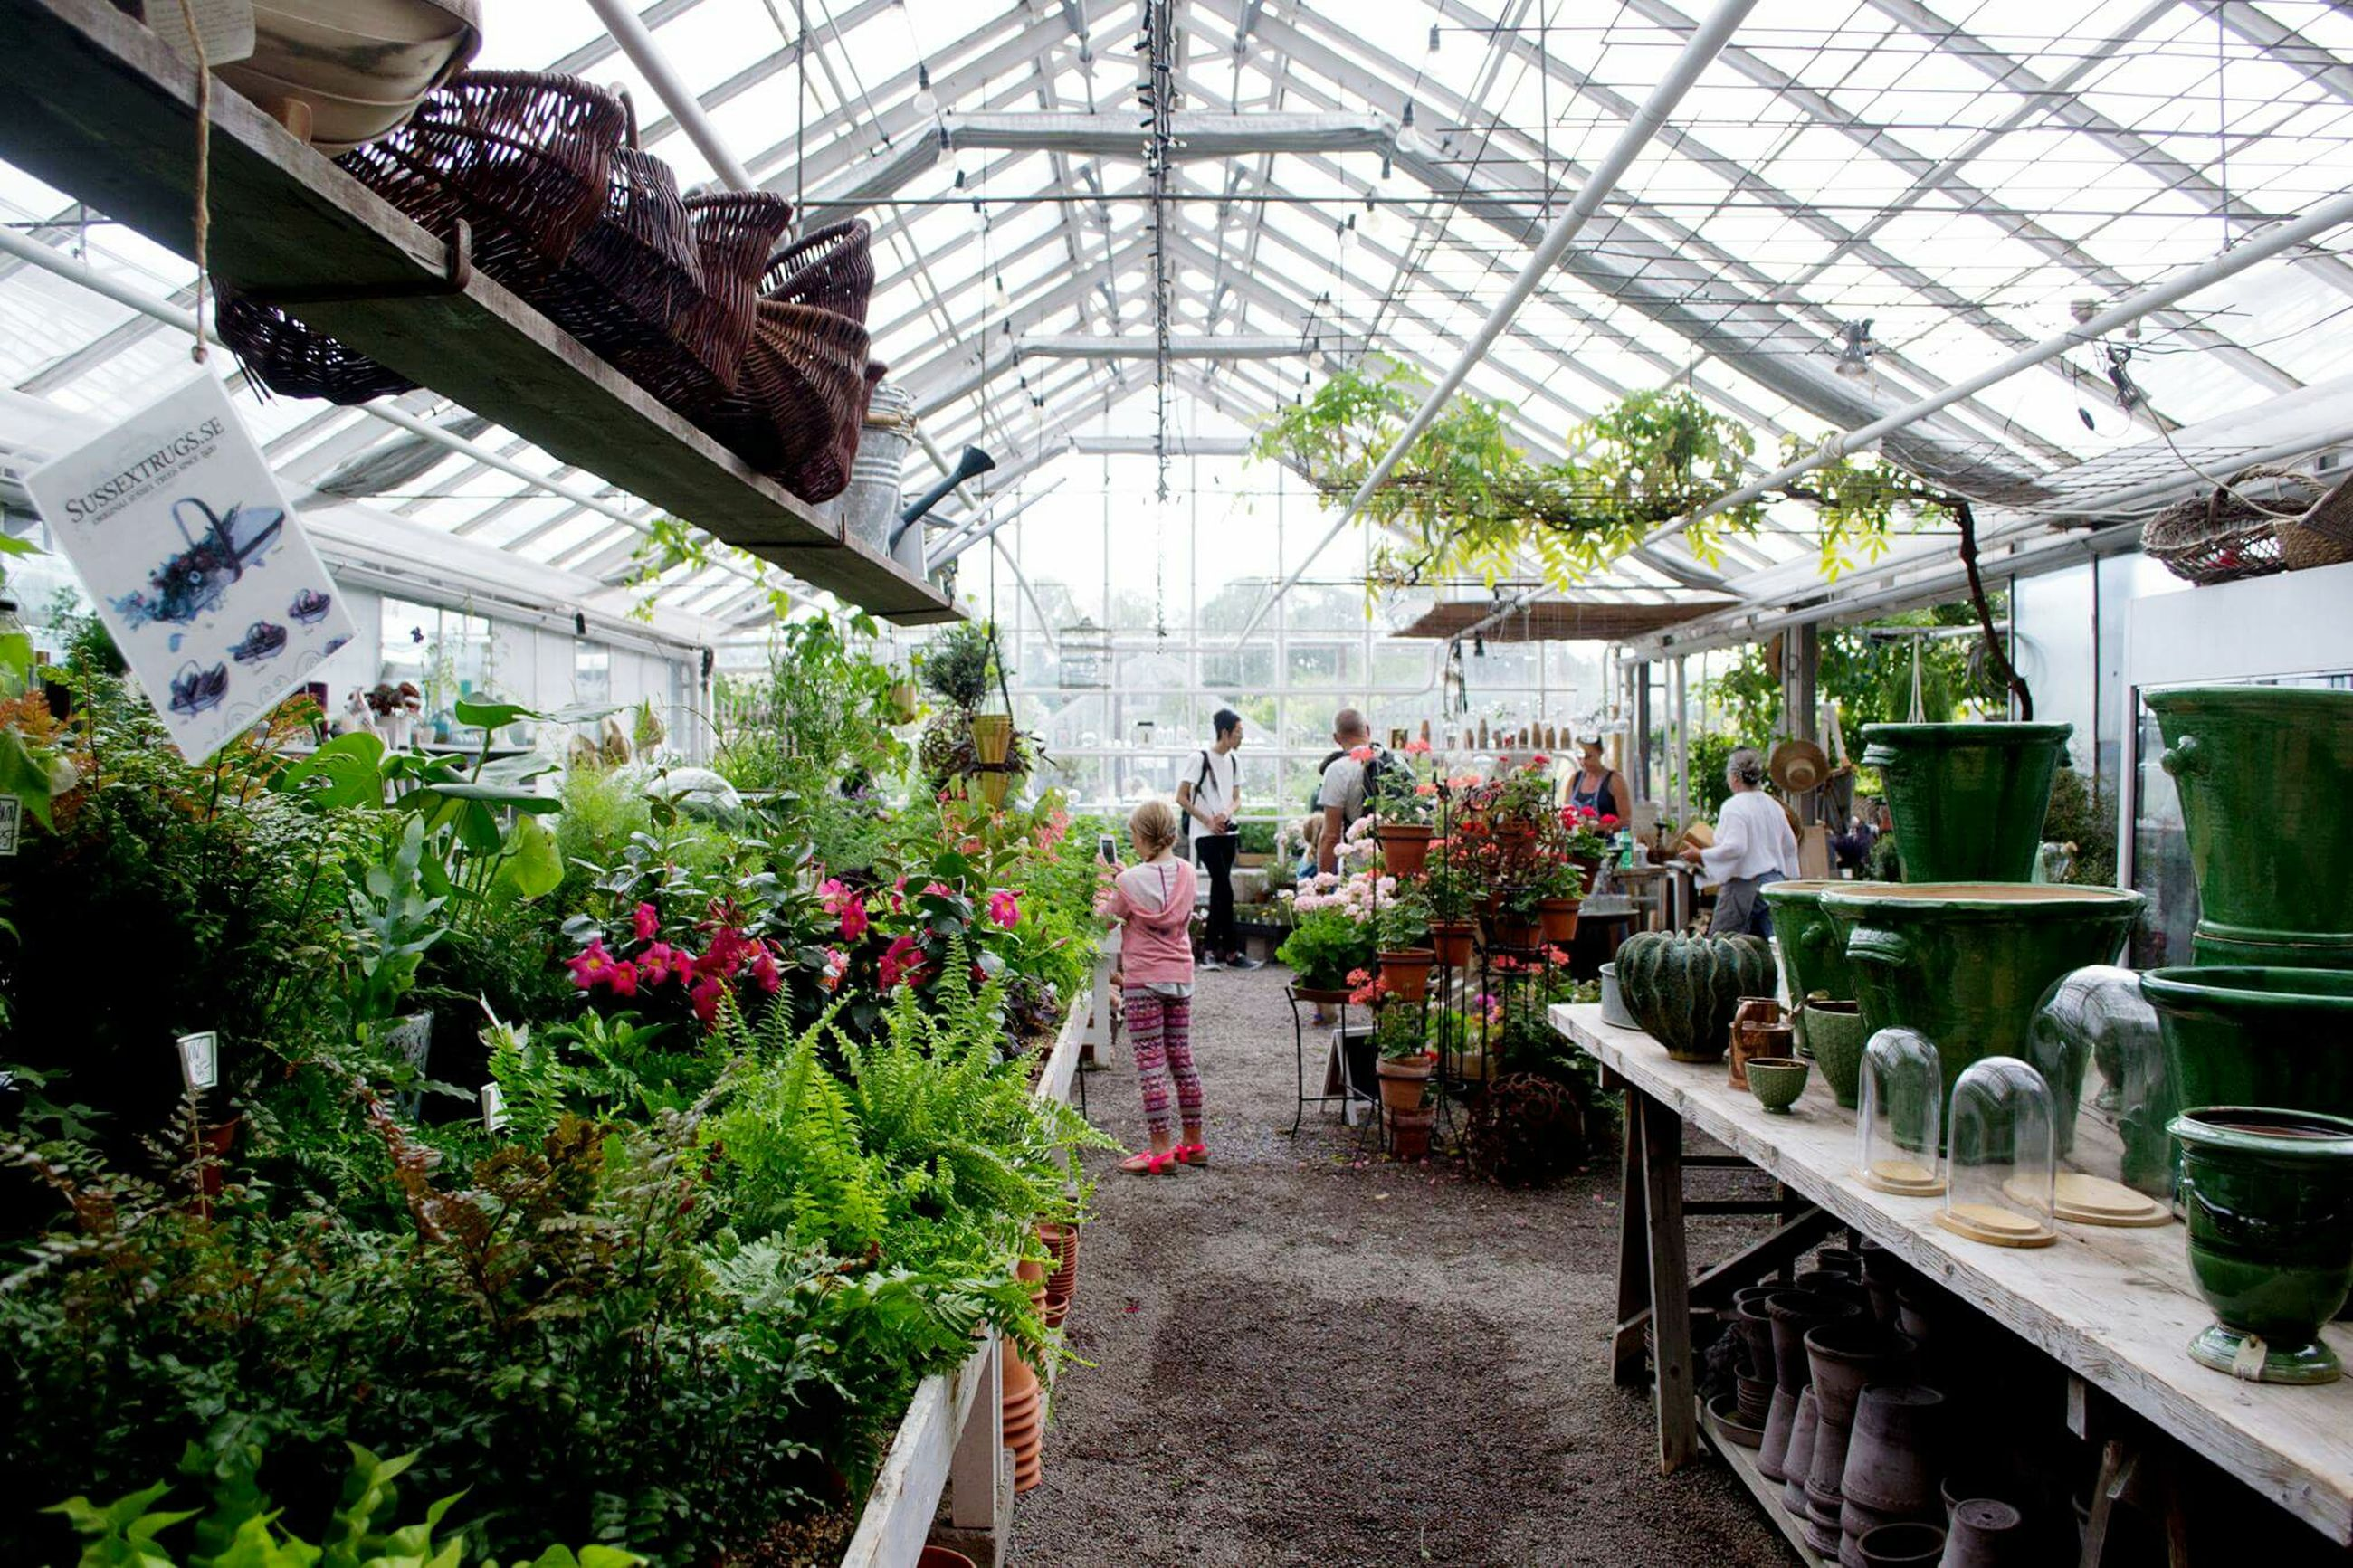 potted plant, plant, architecture, built structure, flower, growth, greenhouse, day, green color, nature, no people, the way forward, growing, fragility